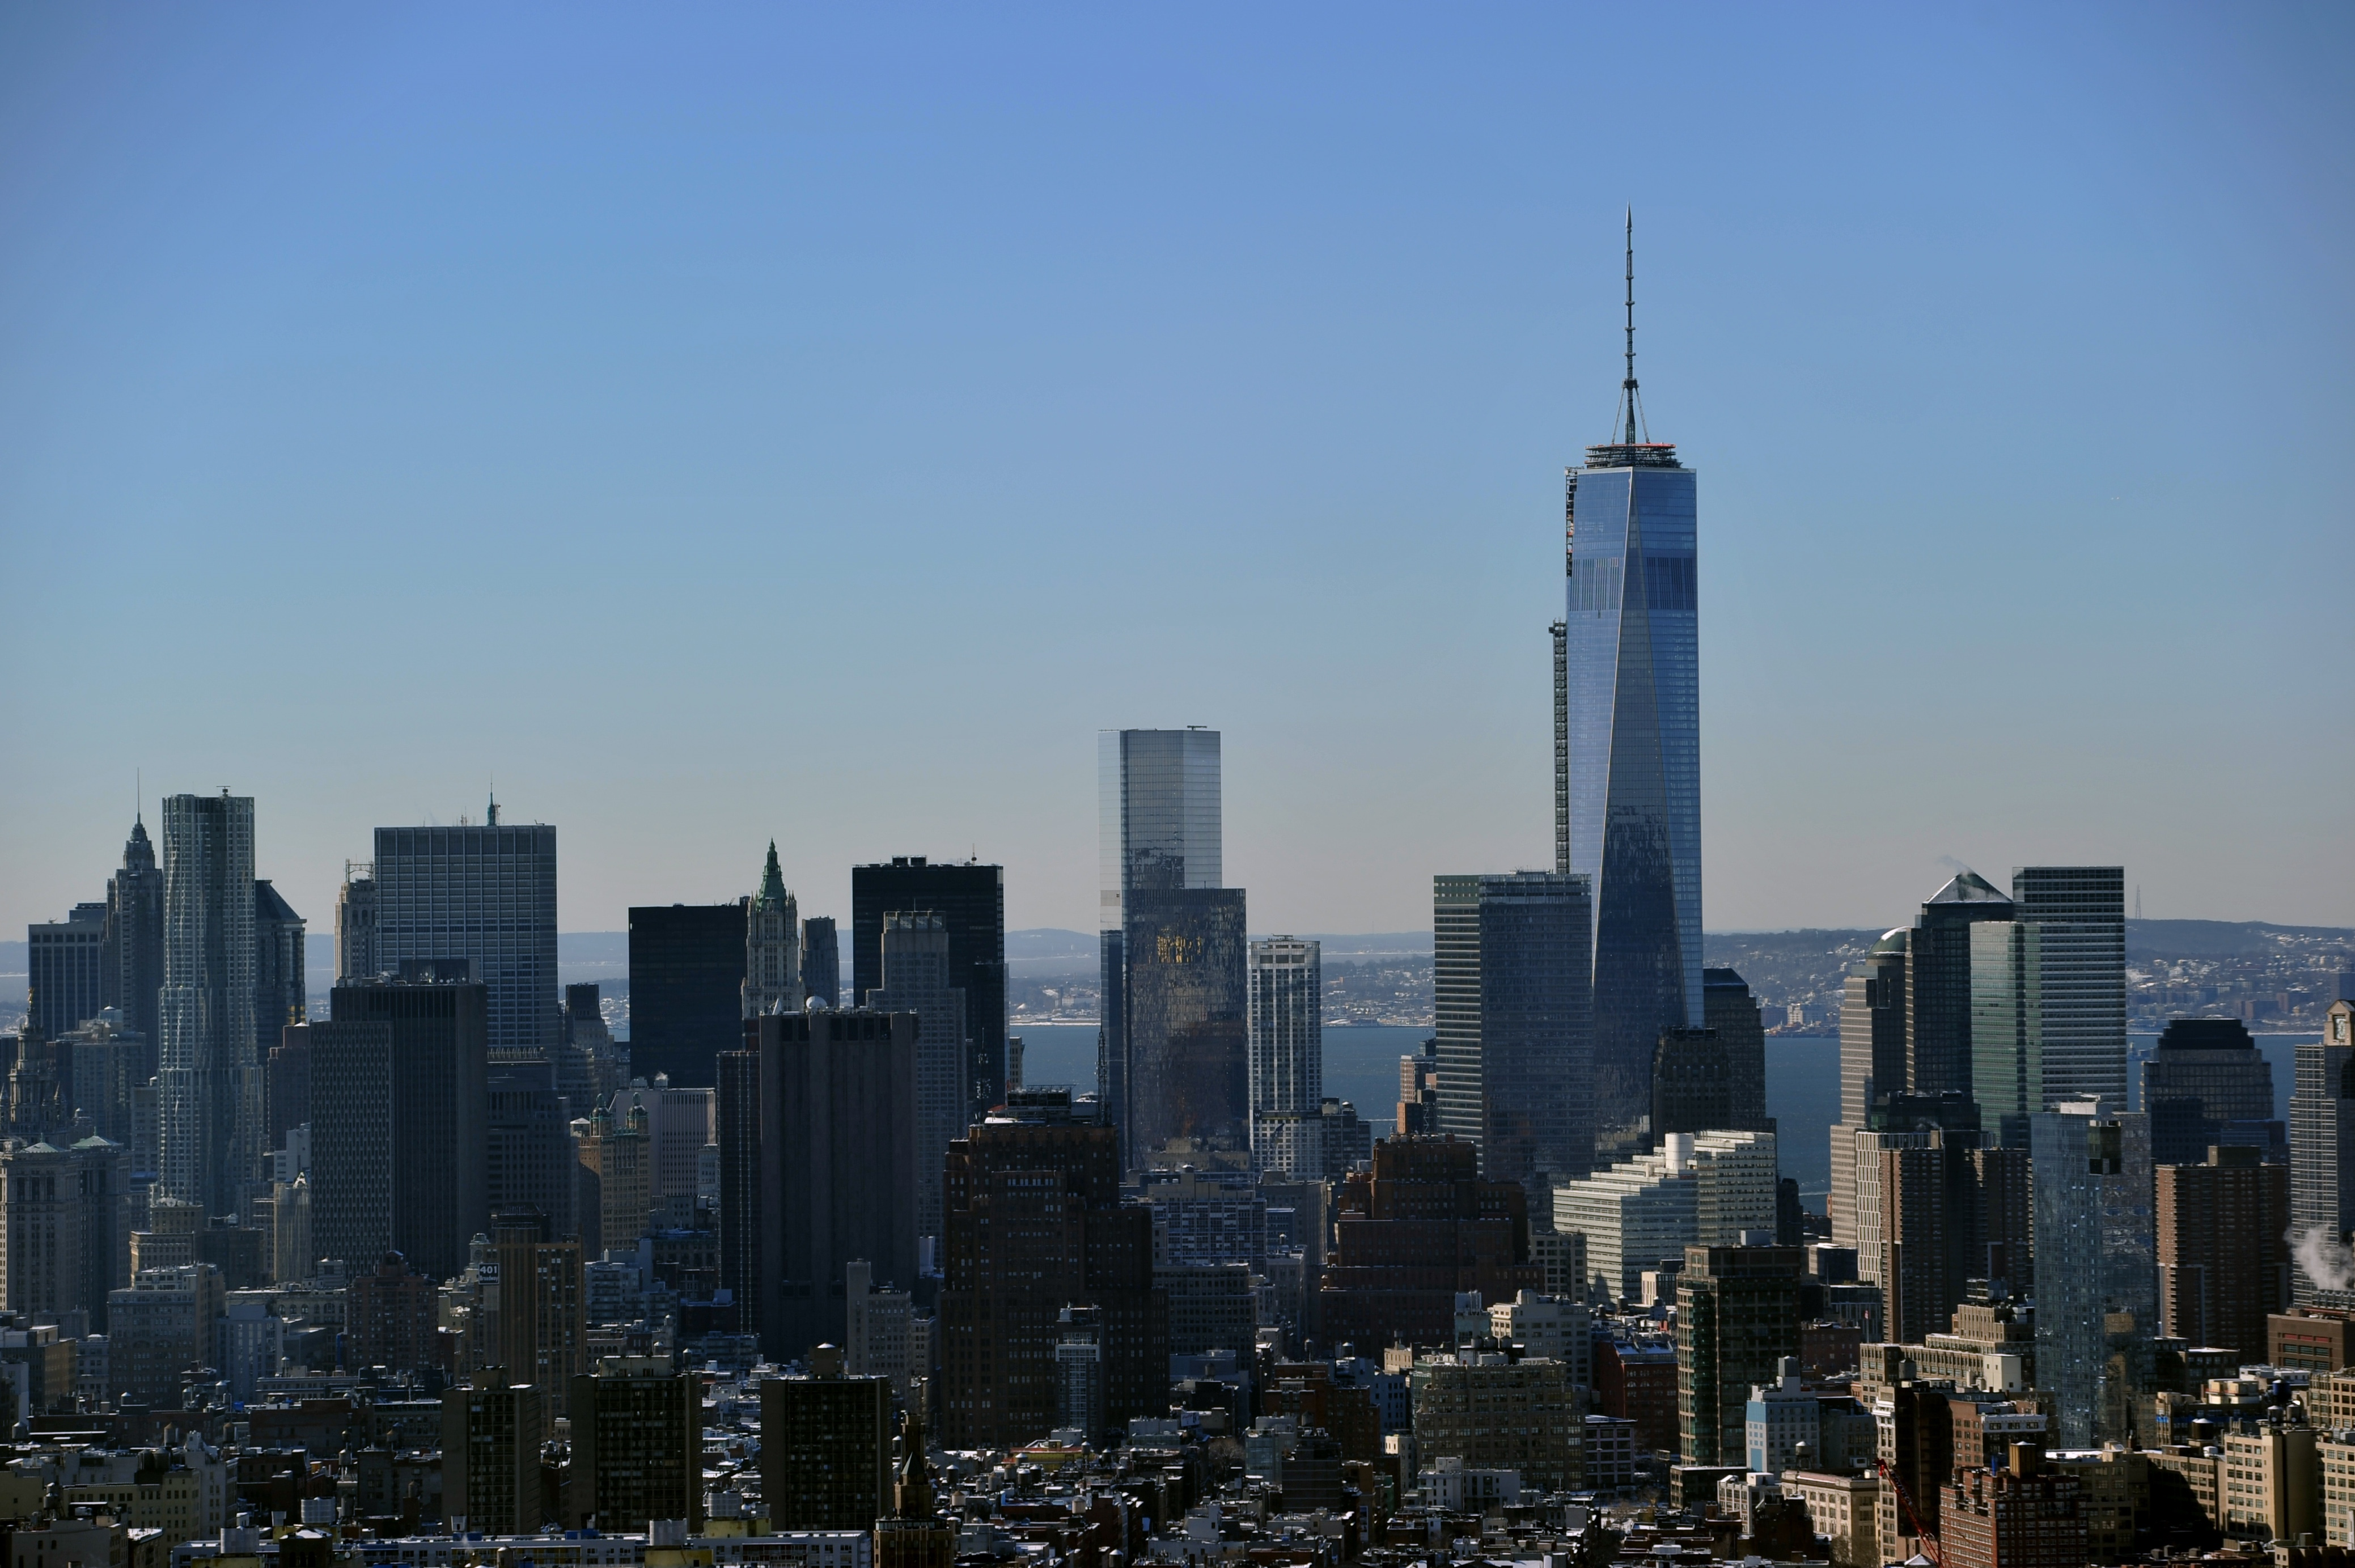 A view of New York City, including One World Trade Center. (Photo: STAN HONDA/AFP/Getty Images)